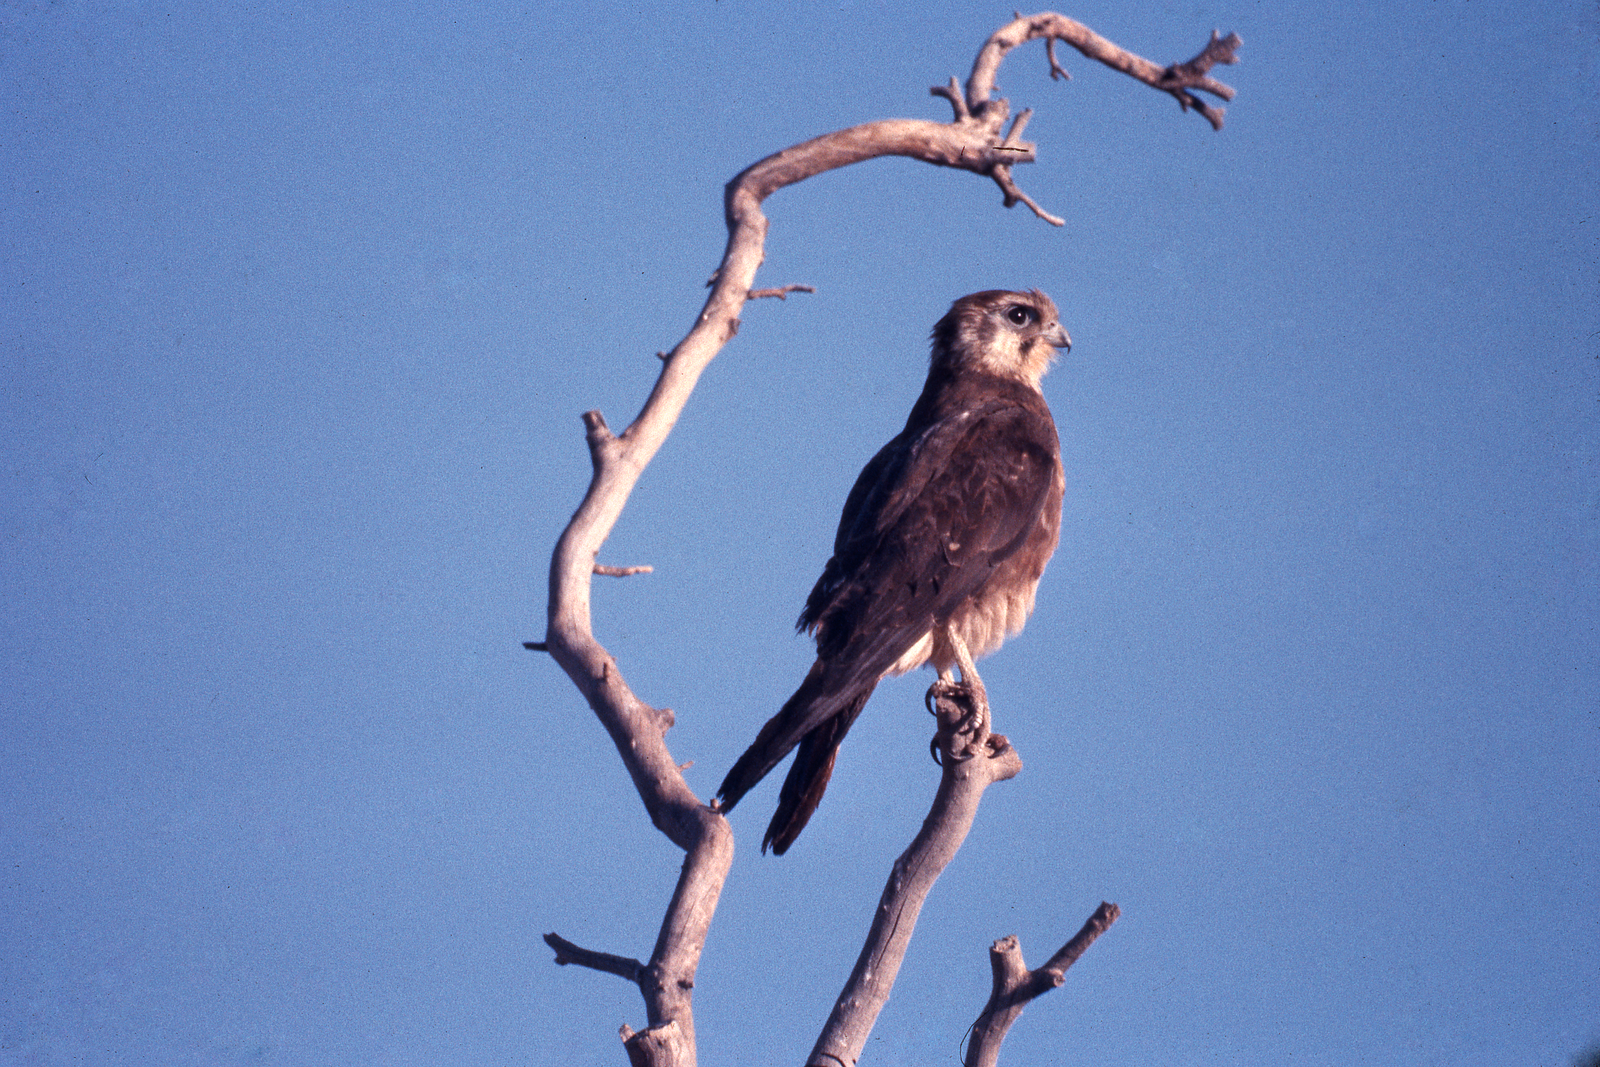 Brown Falcon on a tree